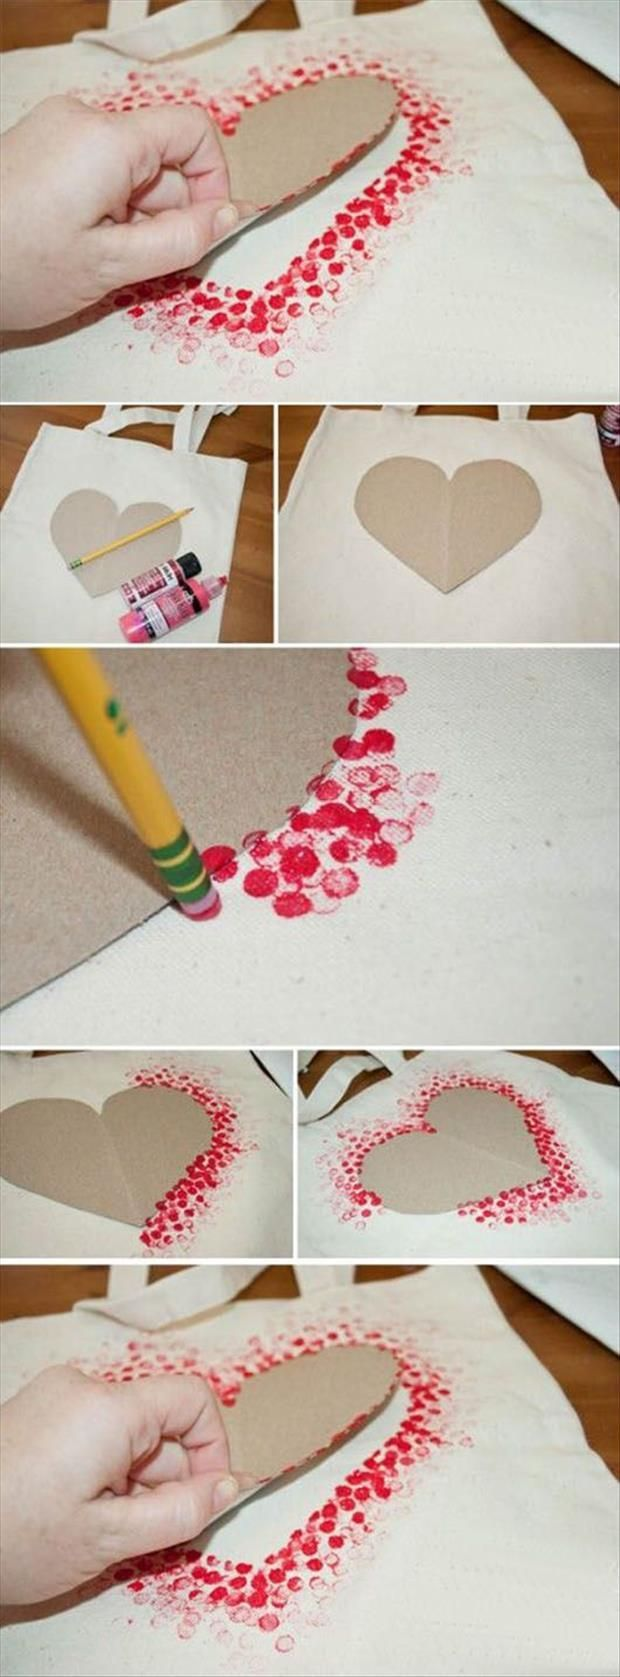 Do it yourself craft ideas of the week 52 pics diy pinterest do it yourself craft ideas of the week 52 pics solutioingenieria Gallery